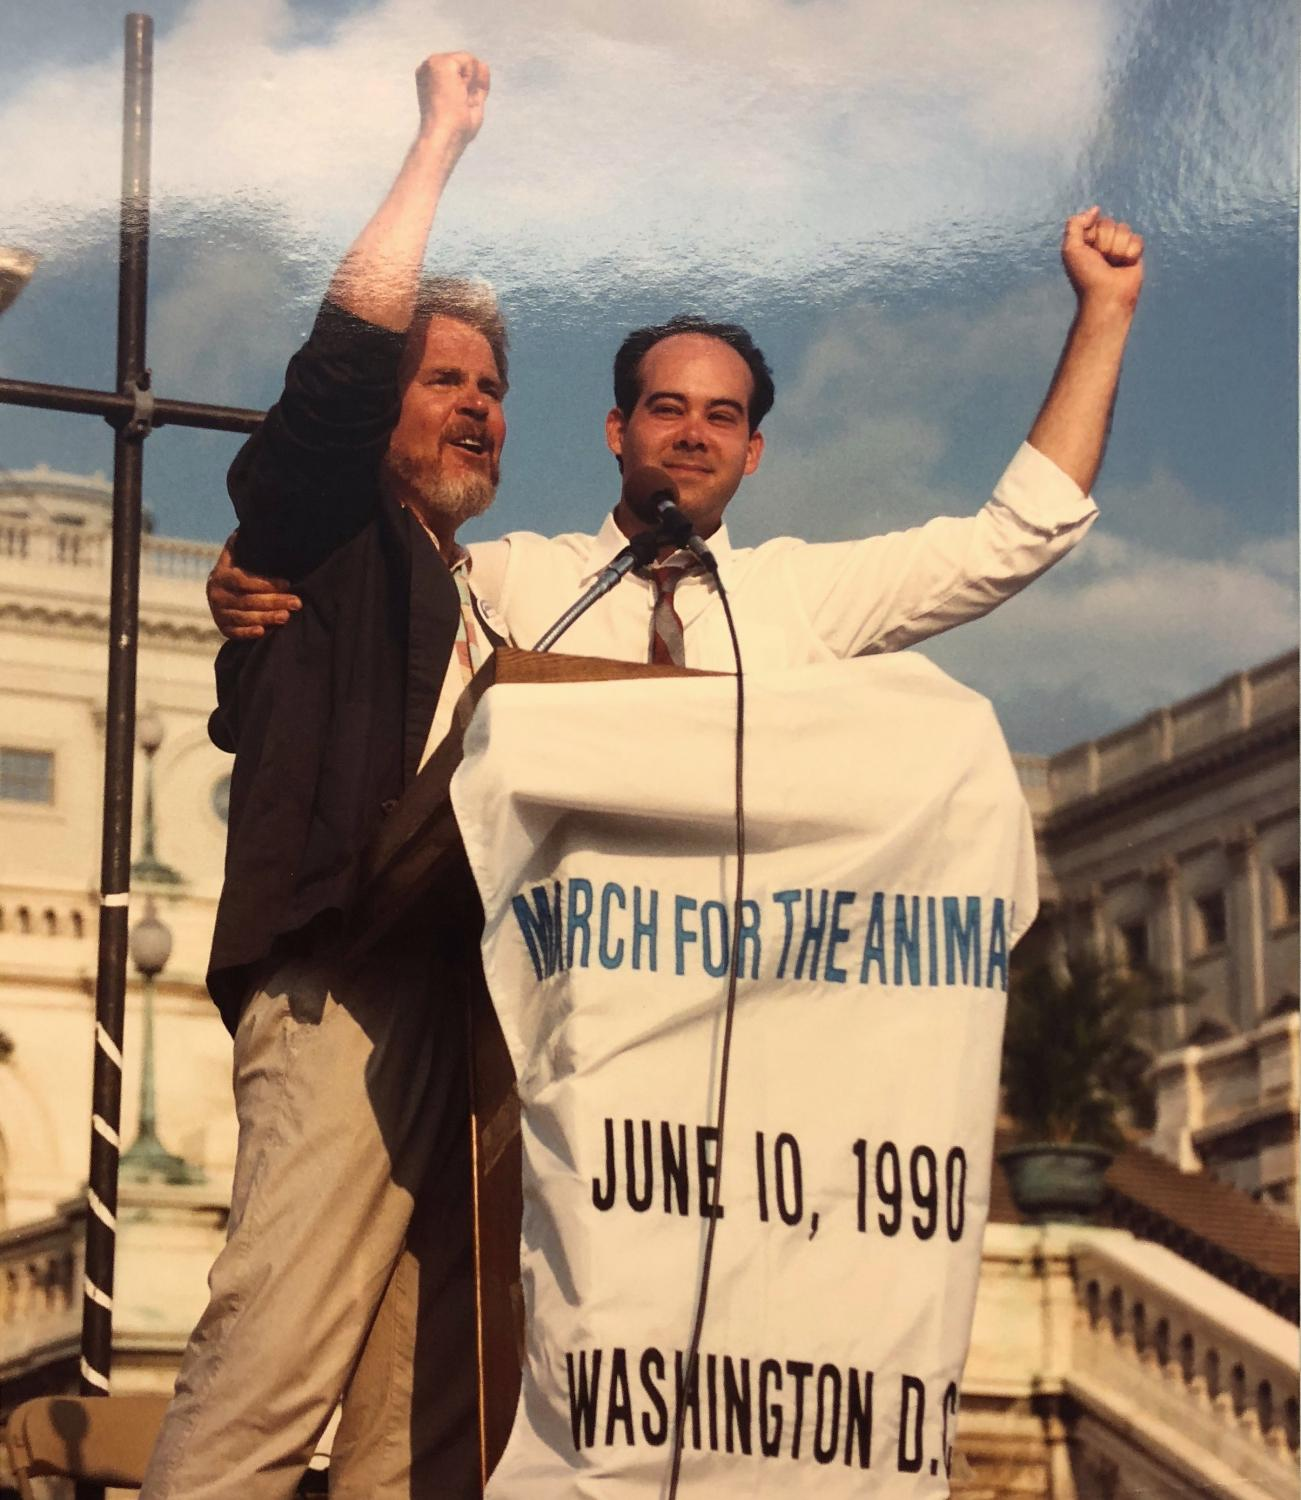 Tom Regan (left) with Don Barnes (right, National Anti-Vivisection Society Director) at March for the Animals, 1990